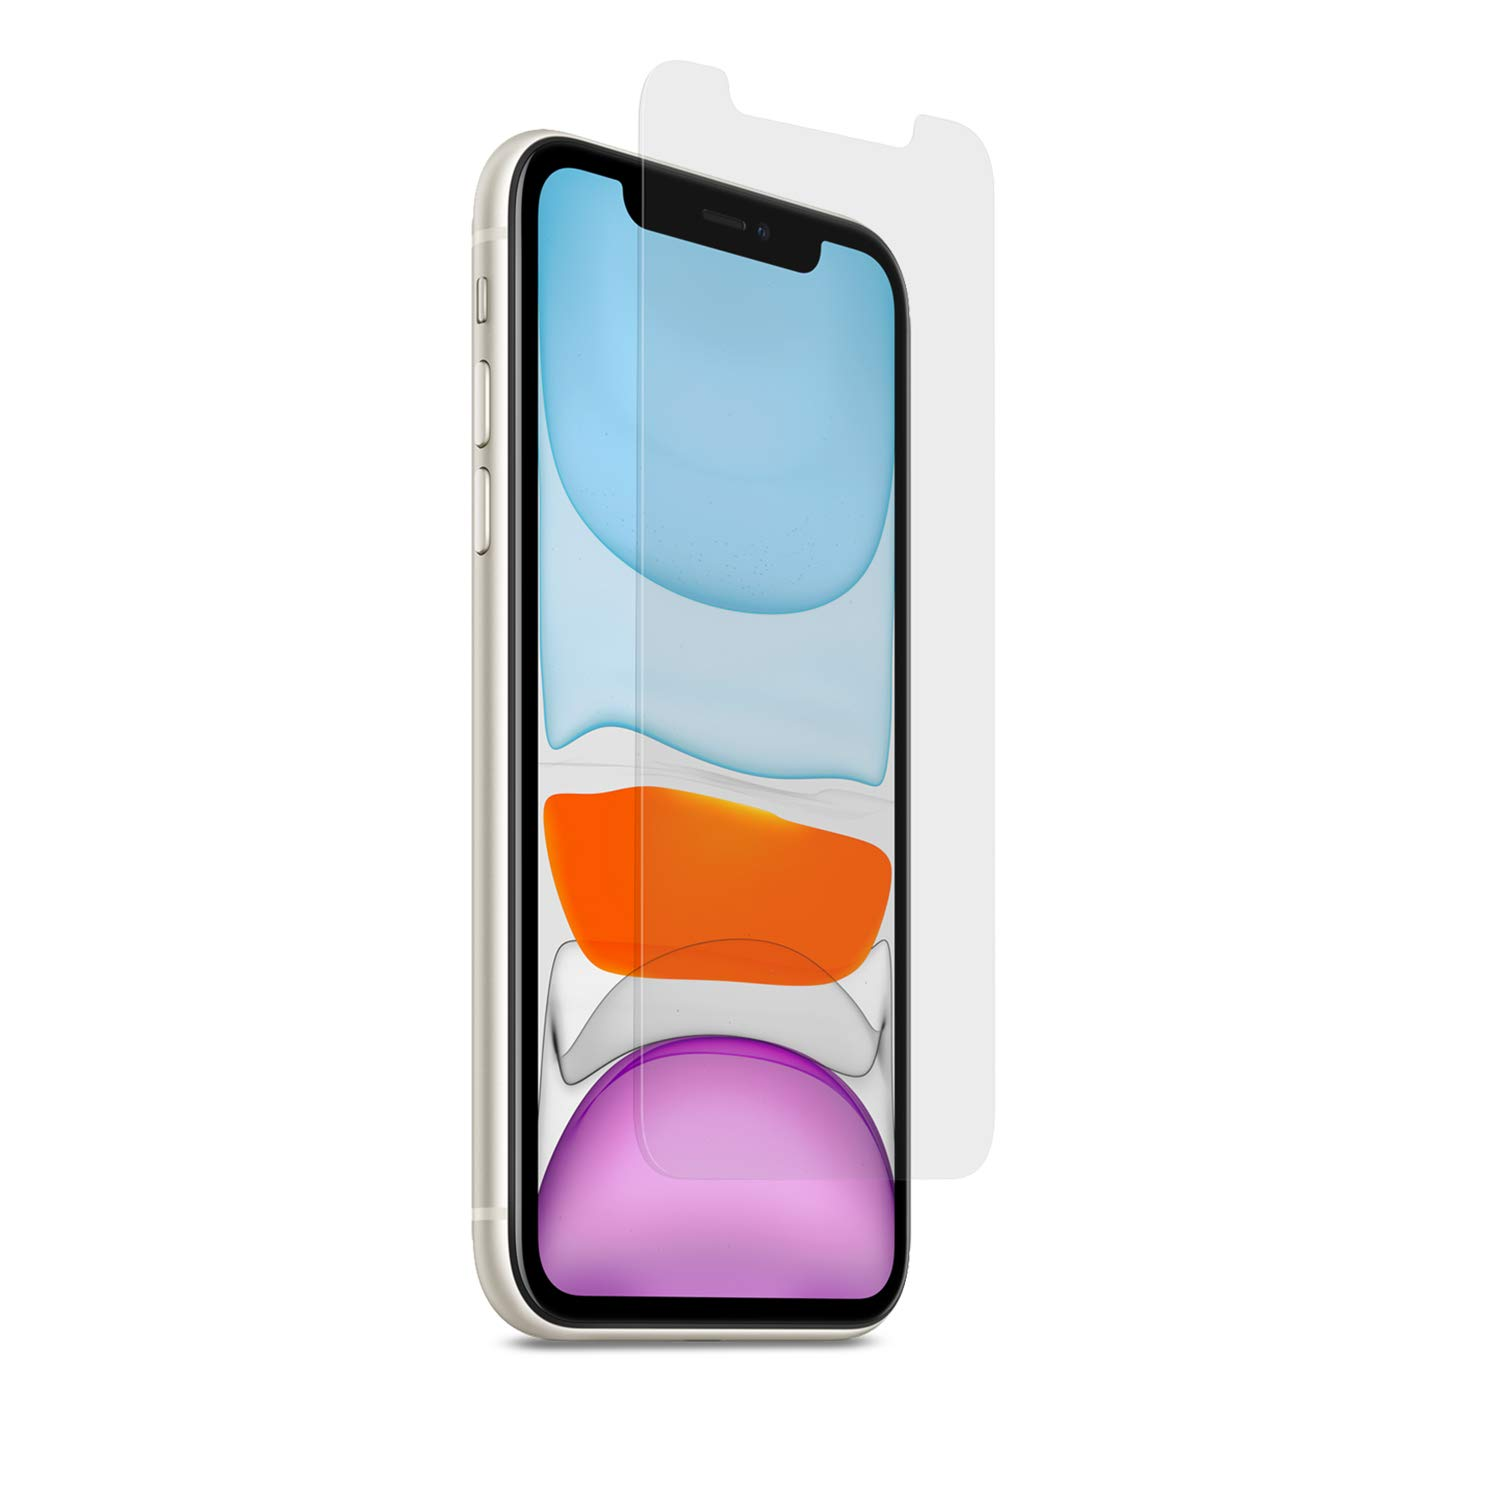 PureGear HD Clear Tempered Glass Screen Protector Compatible with Apple iPhone 11, w/Self Alignment Installation Tray, Touch Sensitive, Case Friendly, Lifetime Replacement Warranty by PureGear